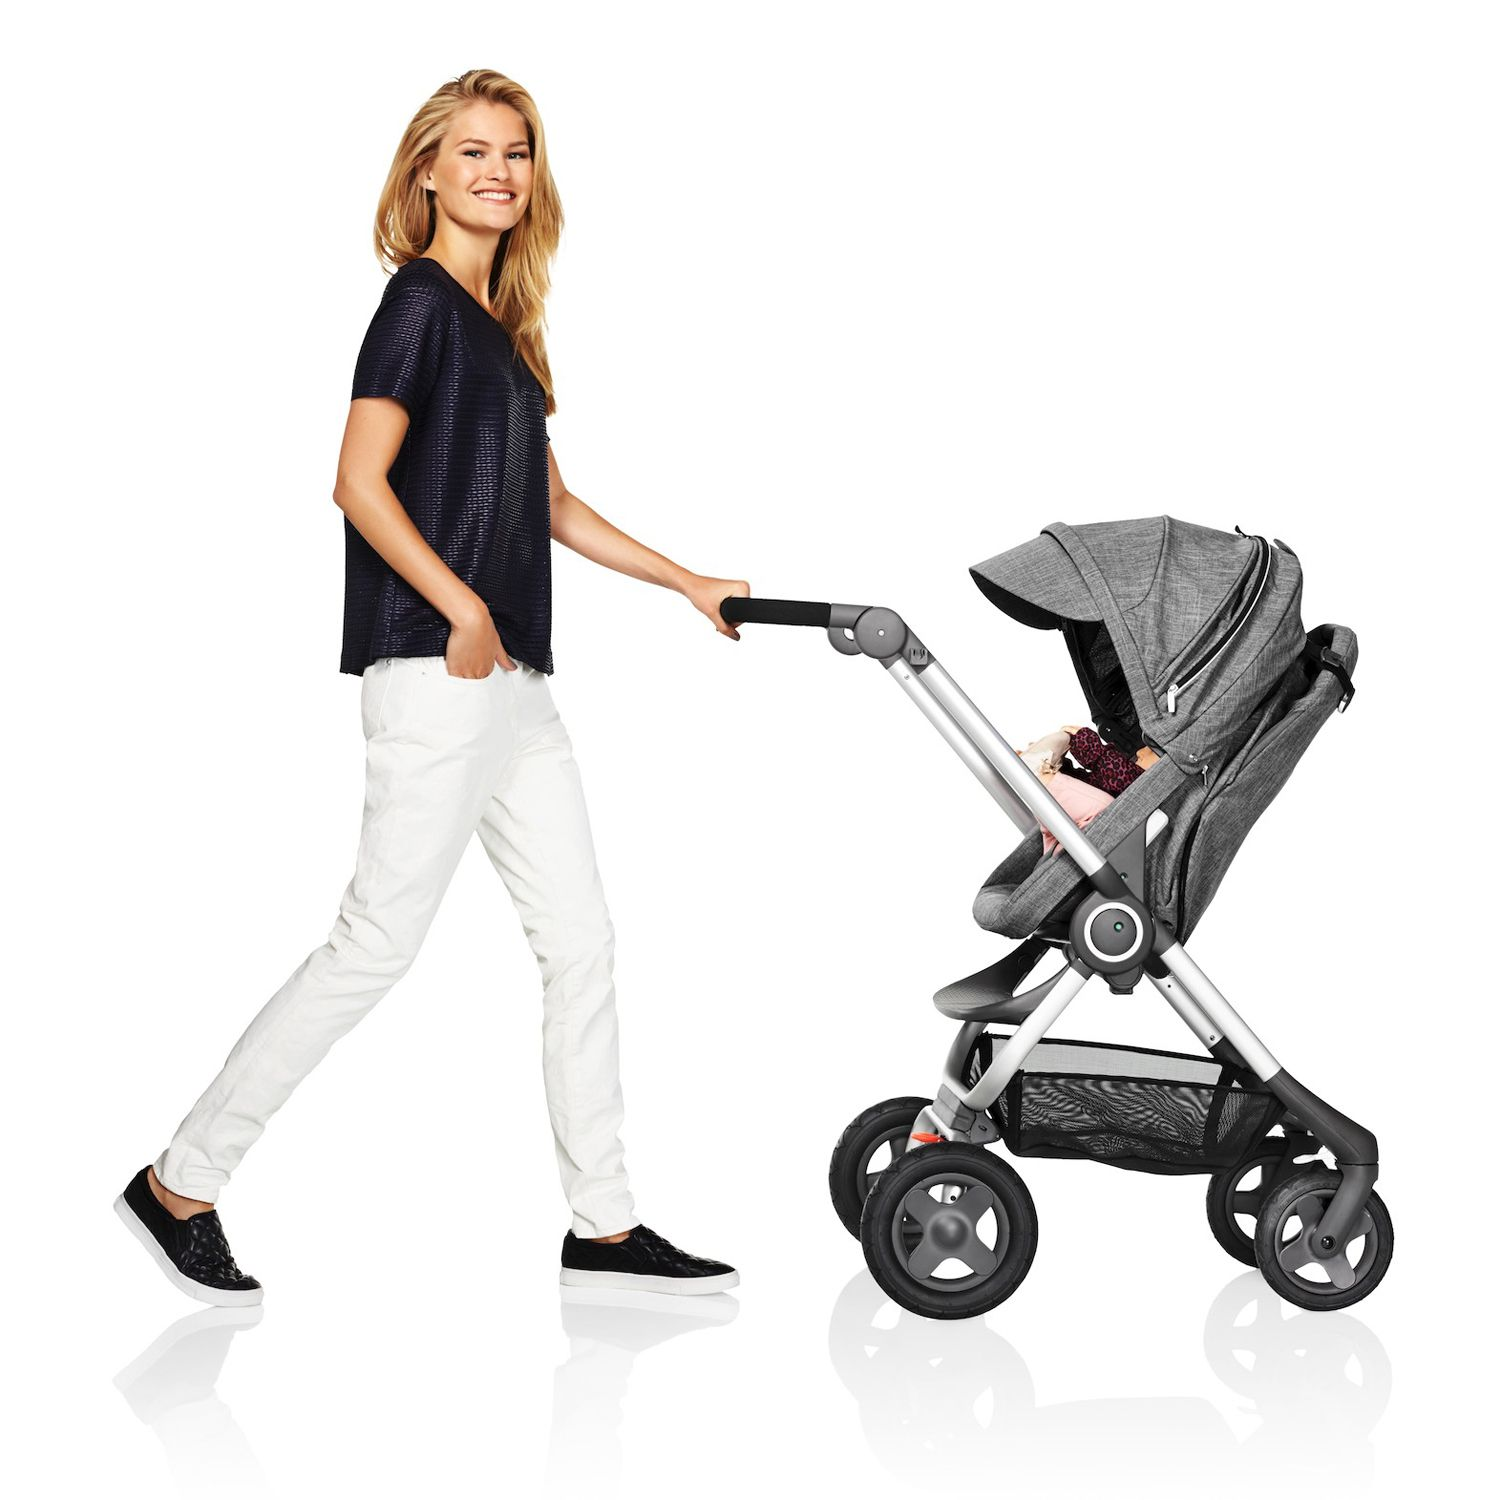 The Smart Urban Stroller. Have you seen the redesigned